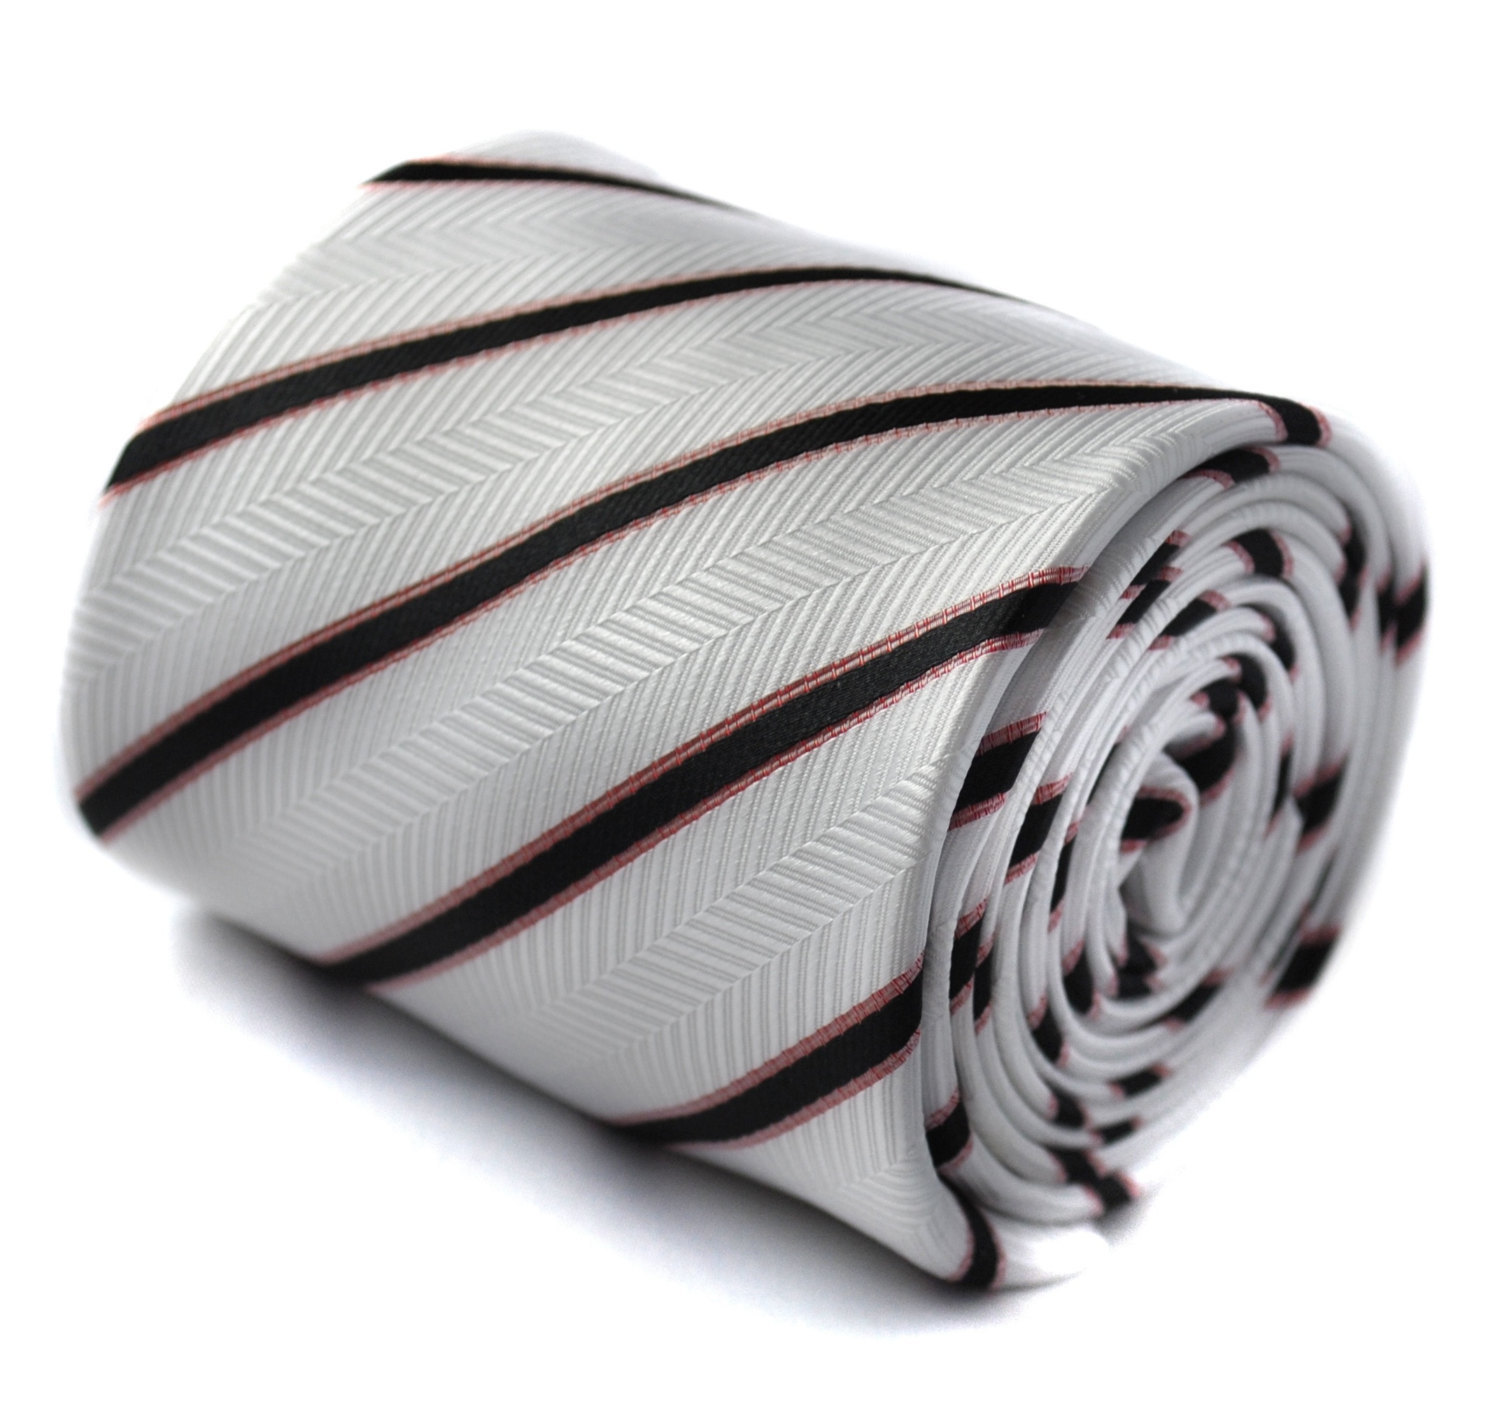 ivory and black striped tie with signature floral design to the rear by Frederic